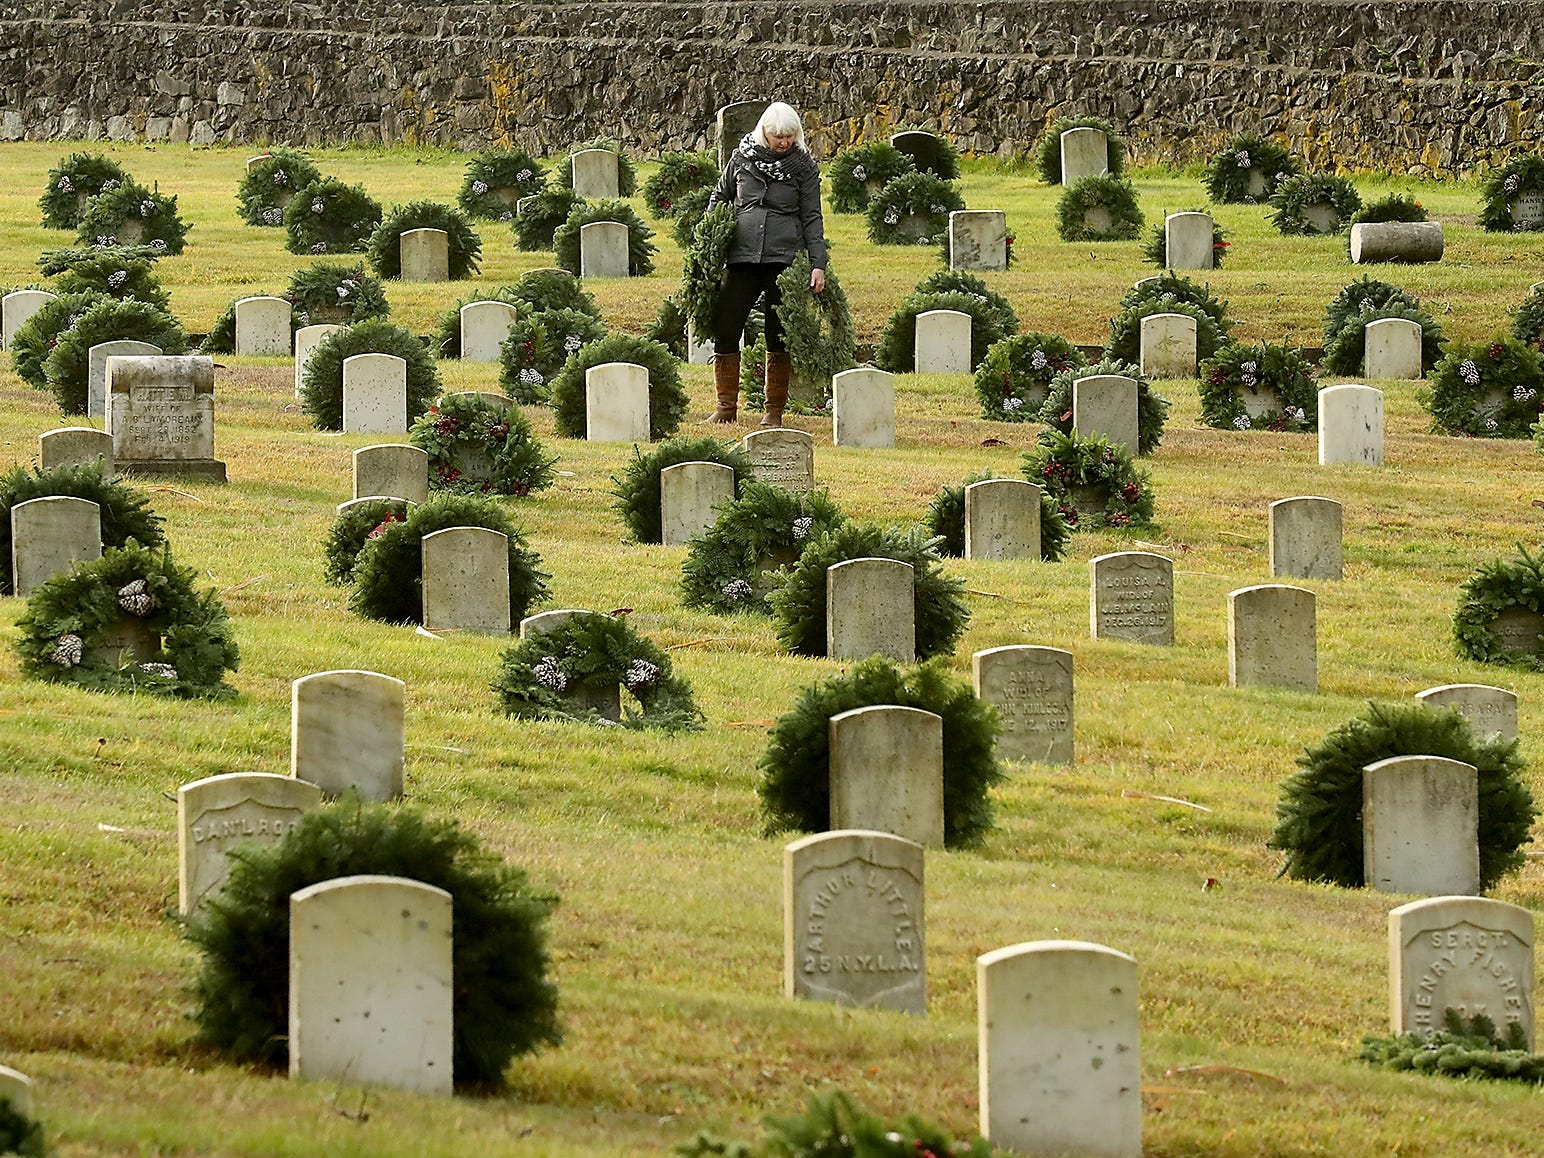 Mary Morin stops to read a headstone as she places wreaths during the Wreaths Across America event at the Washington Veterans Home Cemetery in Port Orchard on Saturday, December 15, 2018.